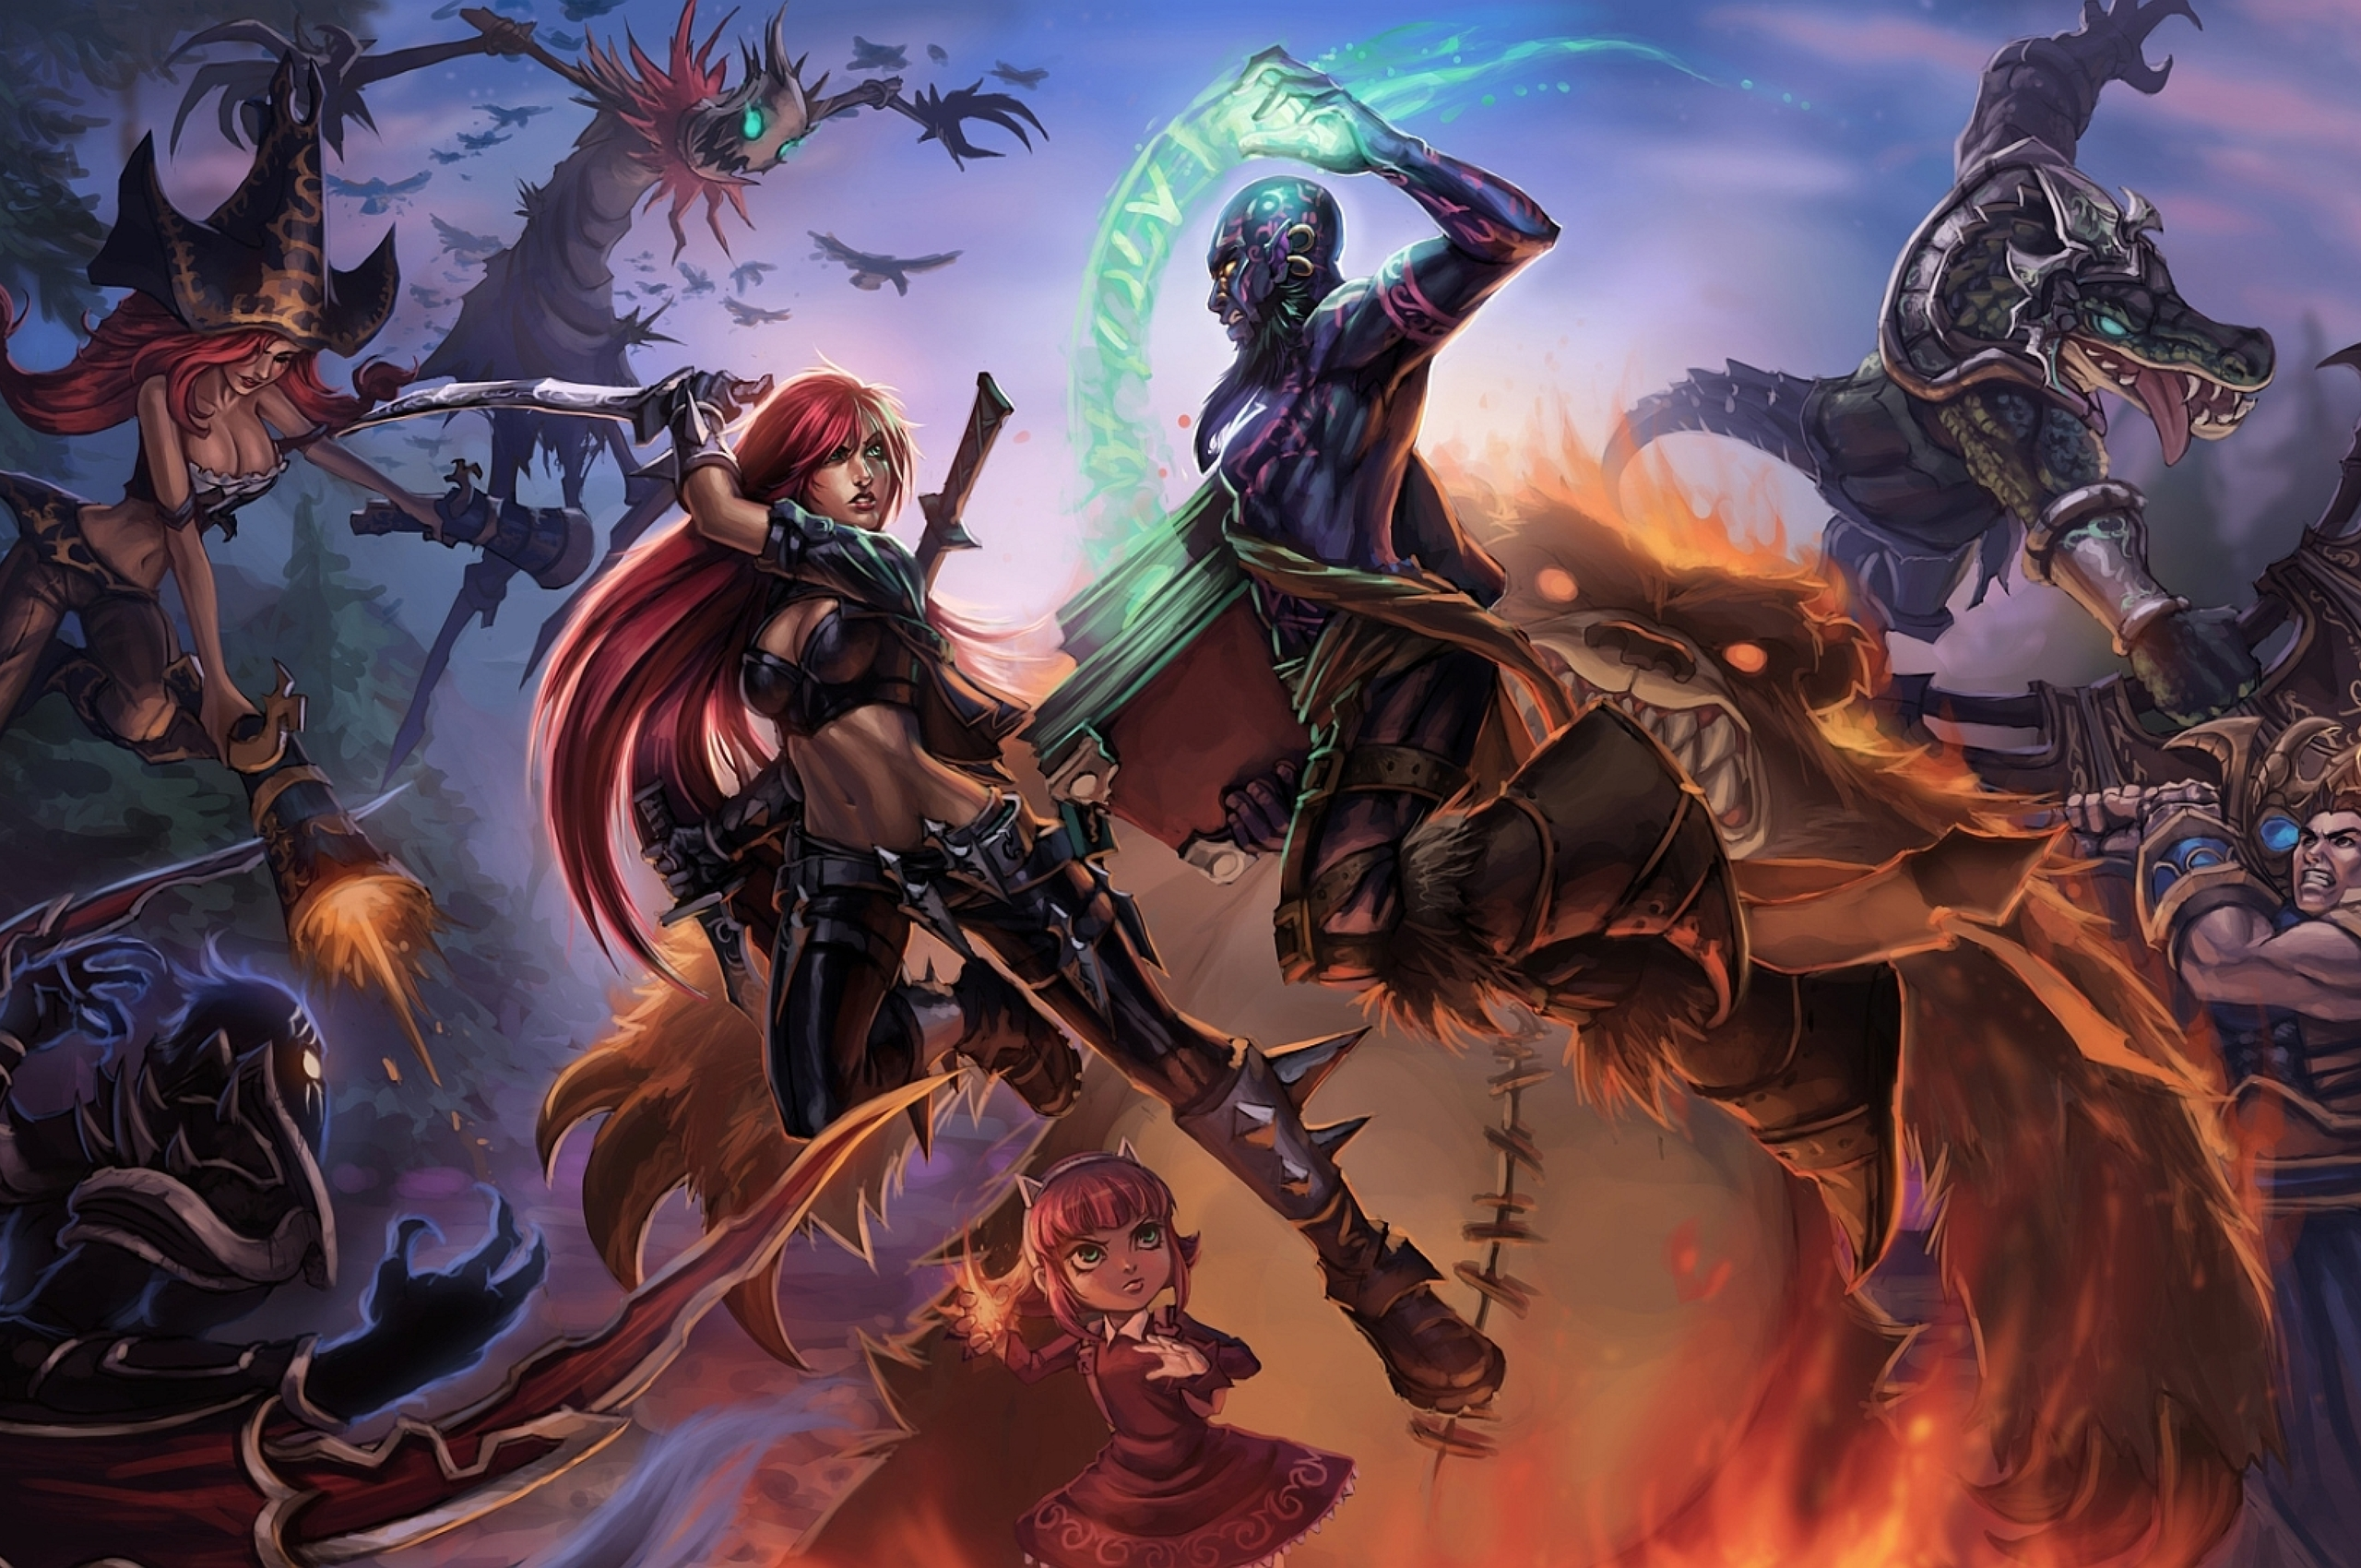 league-of-legends-fantasy-artwork-8k-9l.jpg